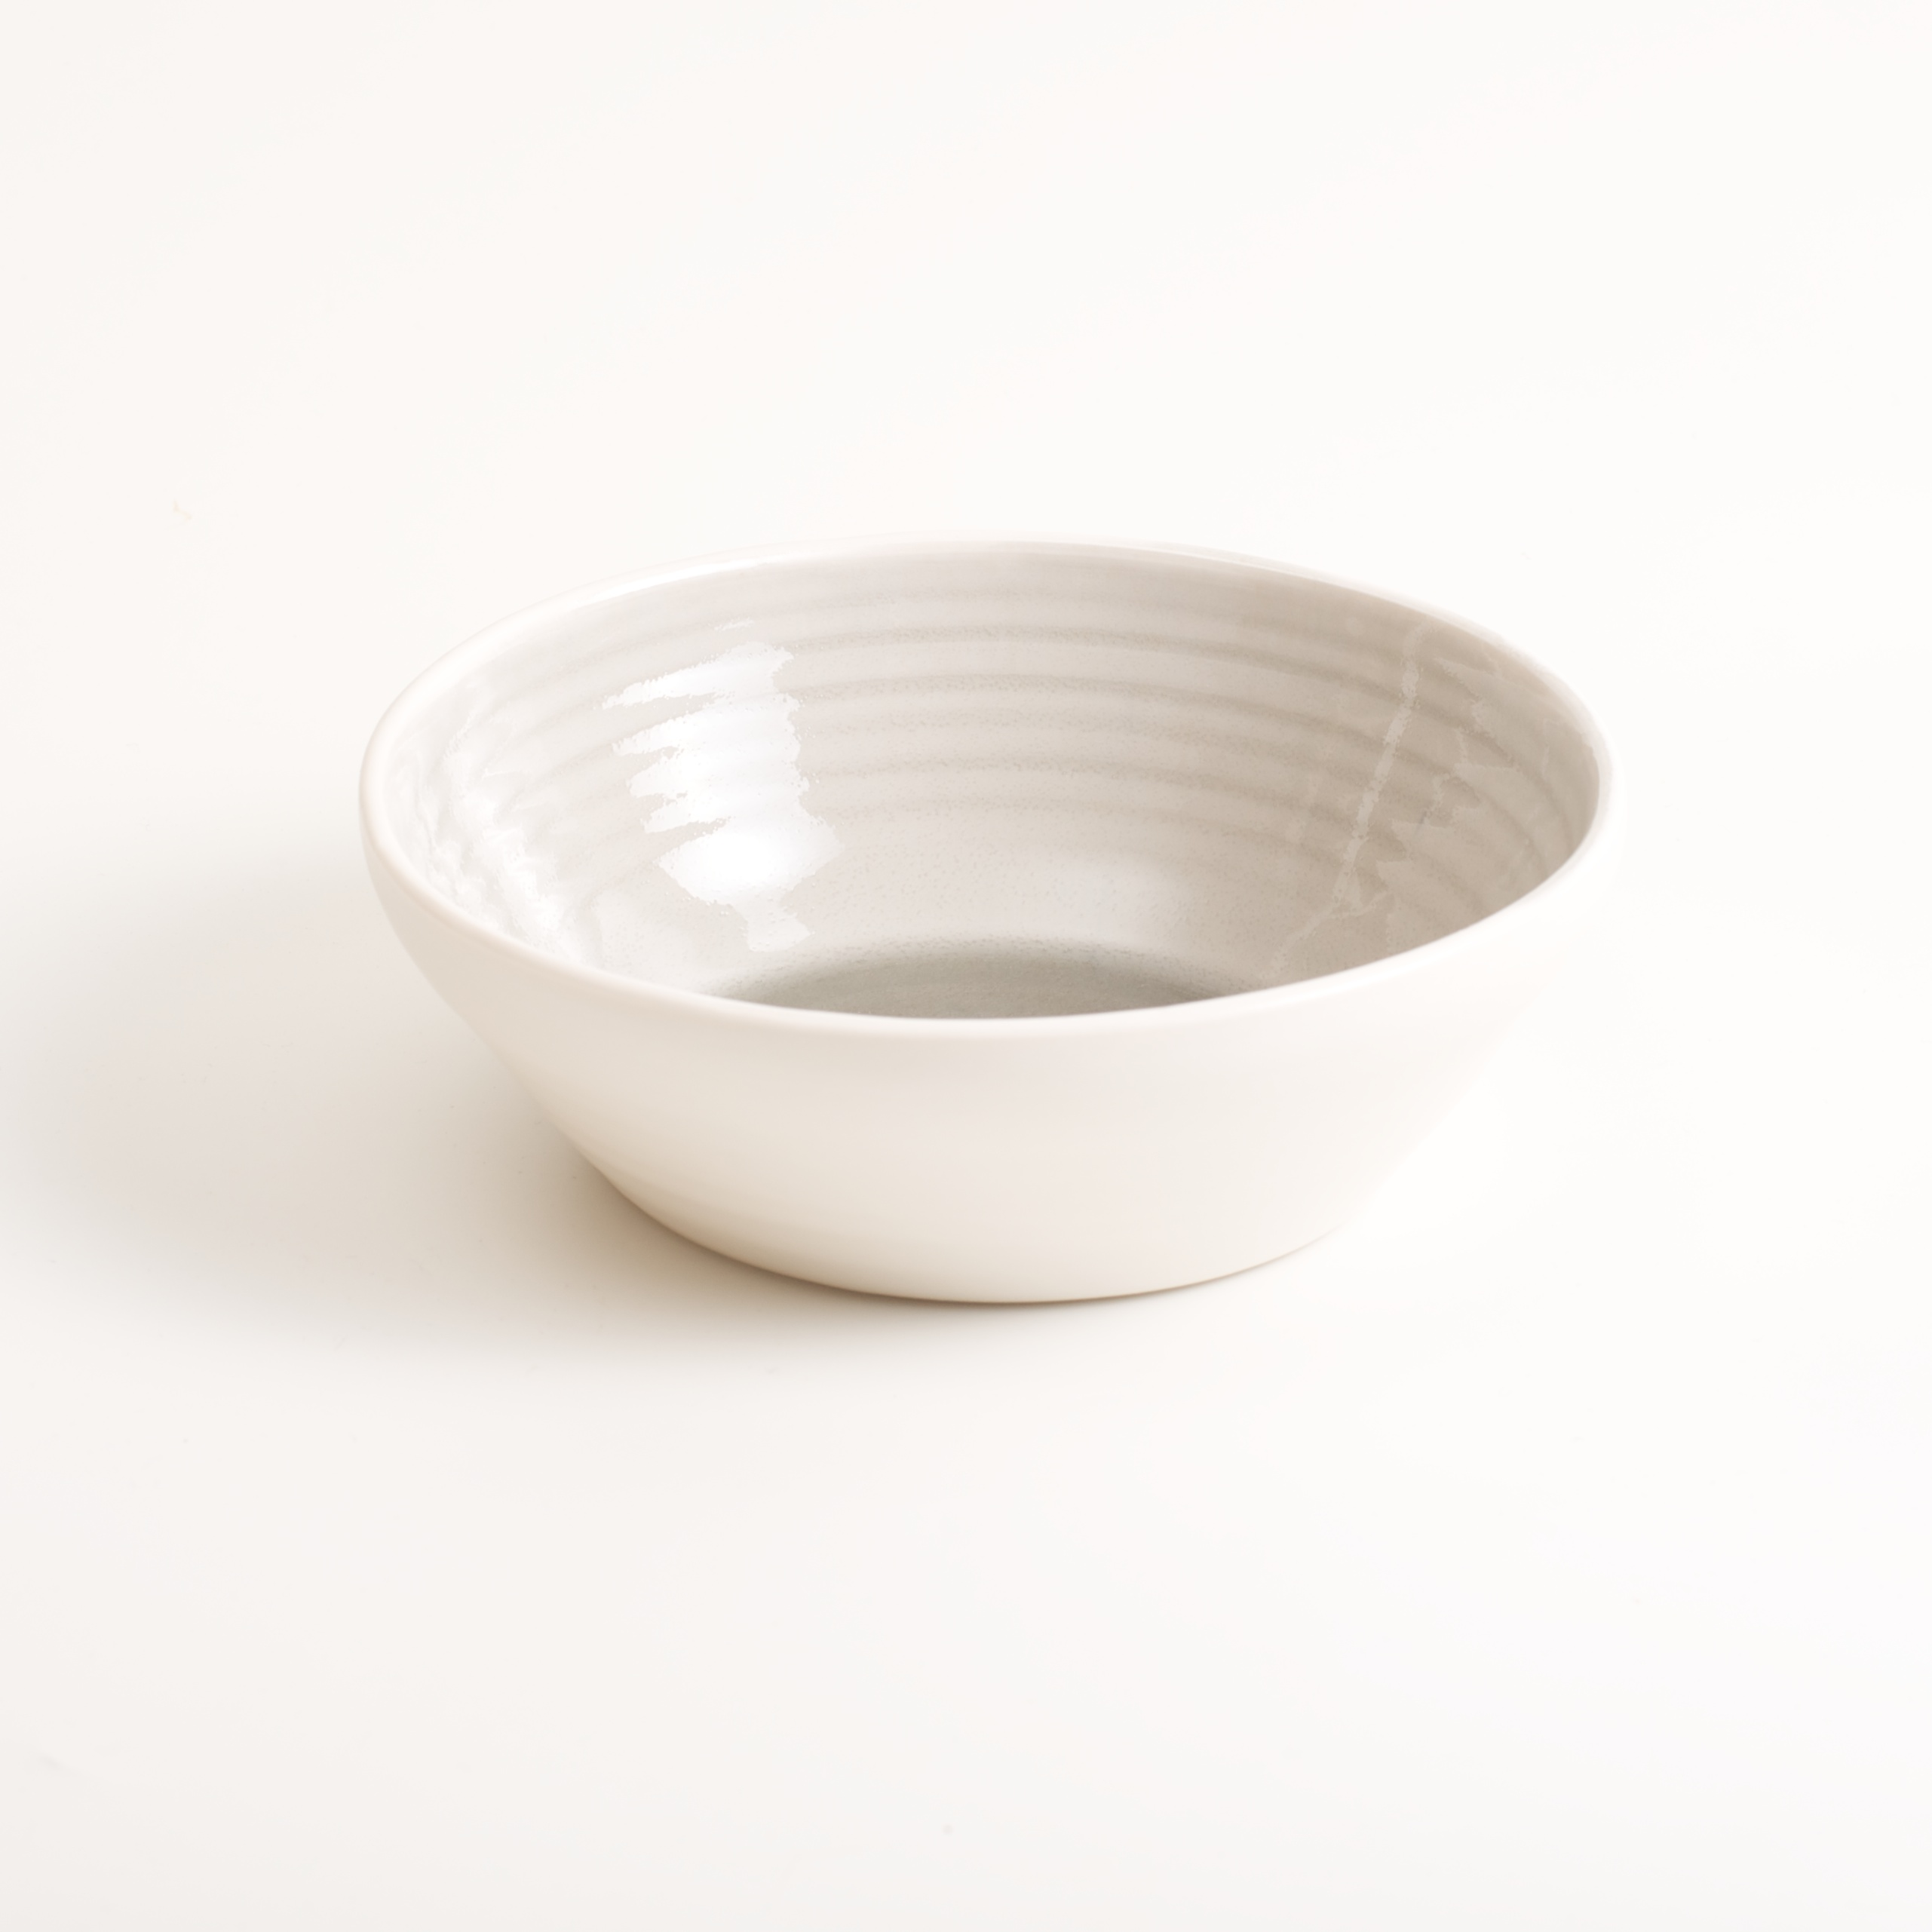 handmade porcelain- bowl - pink- soup bowl- shallow- tableware- dinnerware-